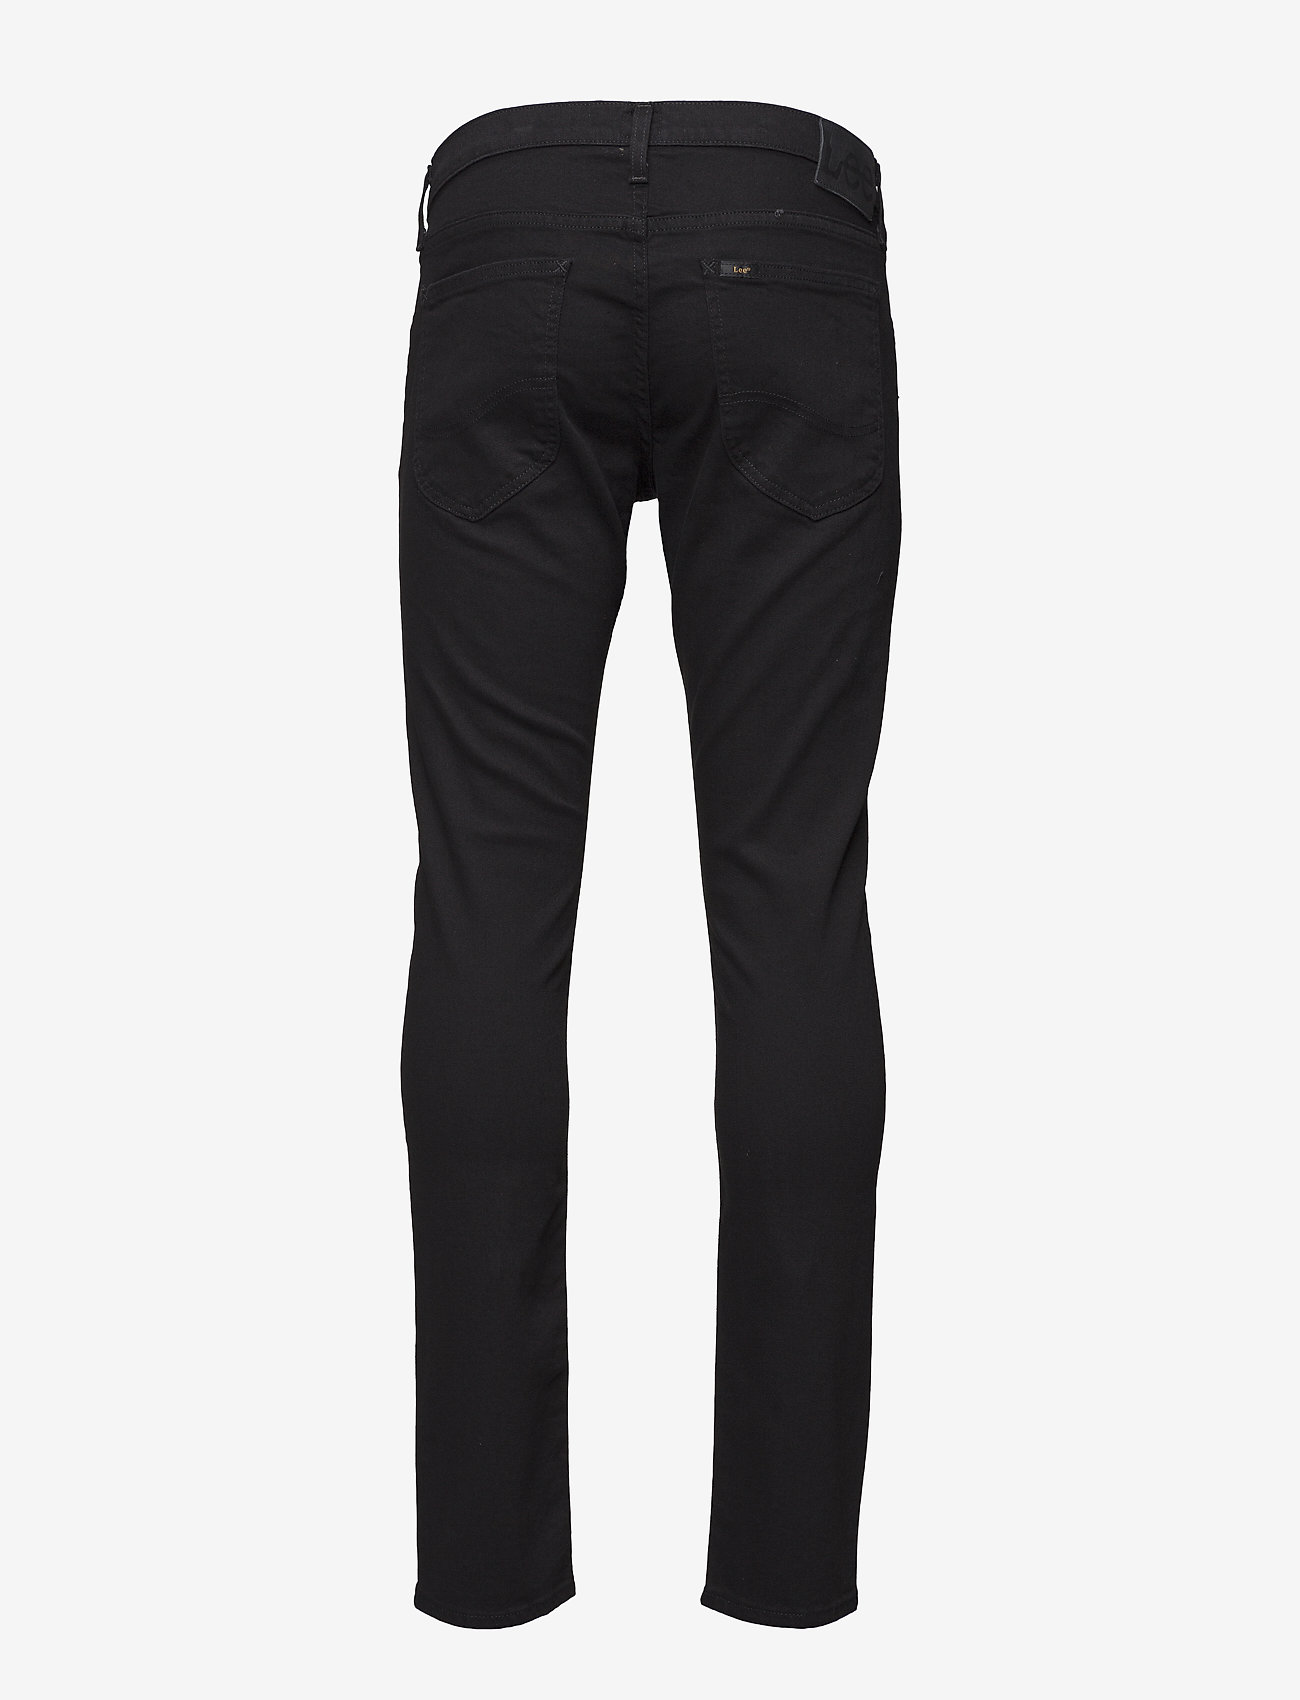 Lee Jeans - LUKE - slim jeans - clean black - 1